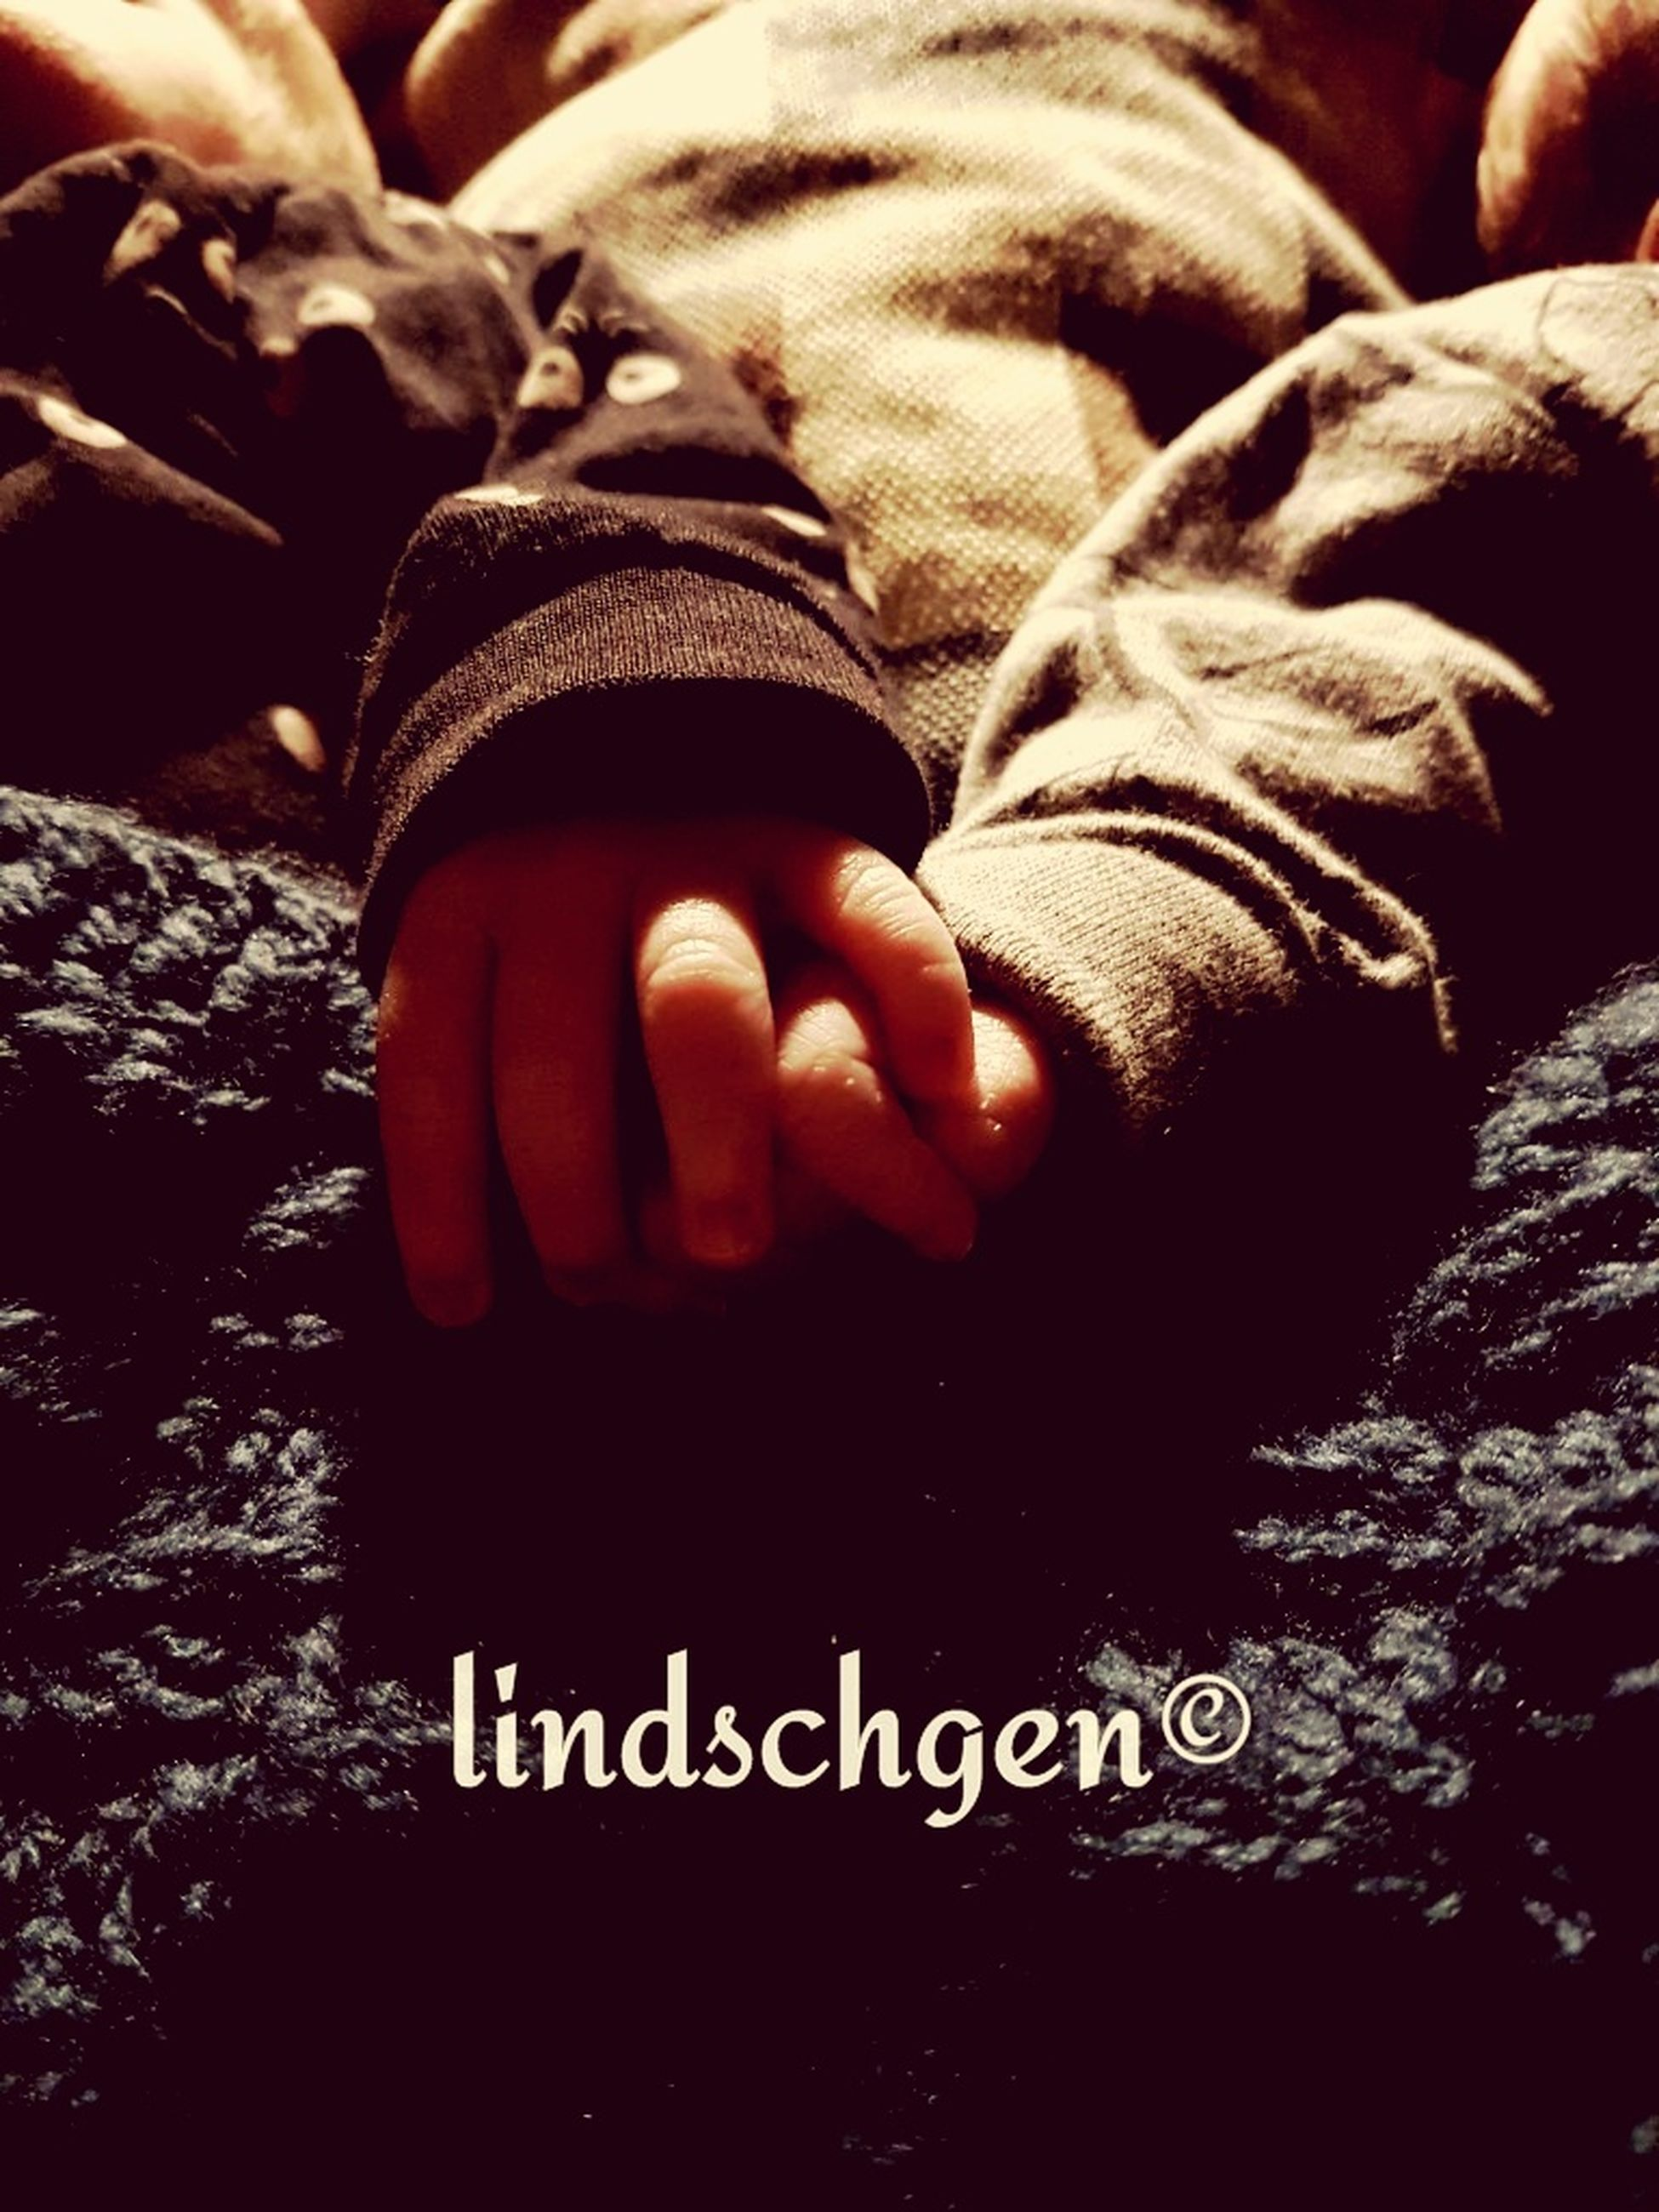 baby, indoors, babyhood, human body part, one person, close-up, human hand, newborn, childhood, real people, day, people